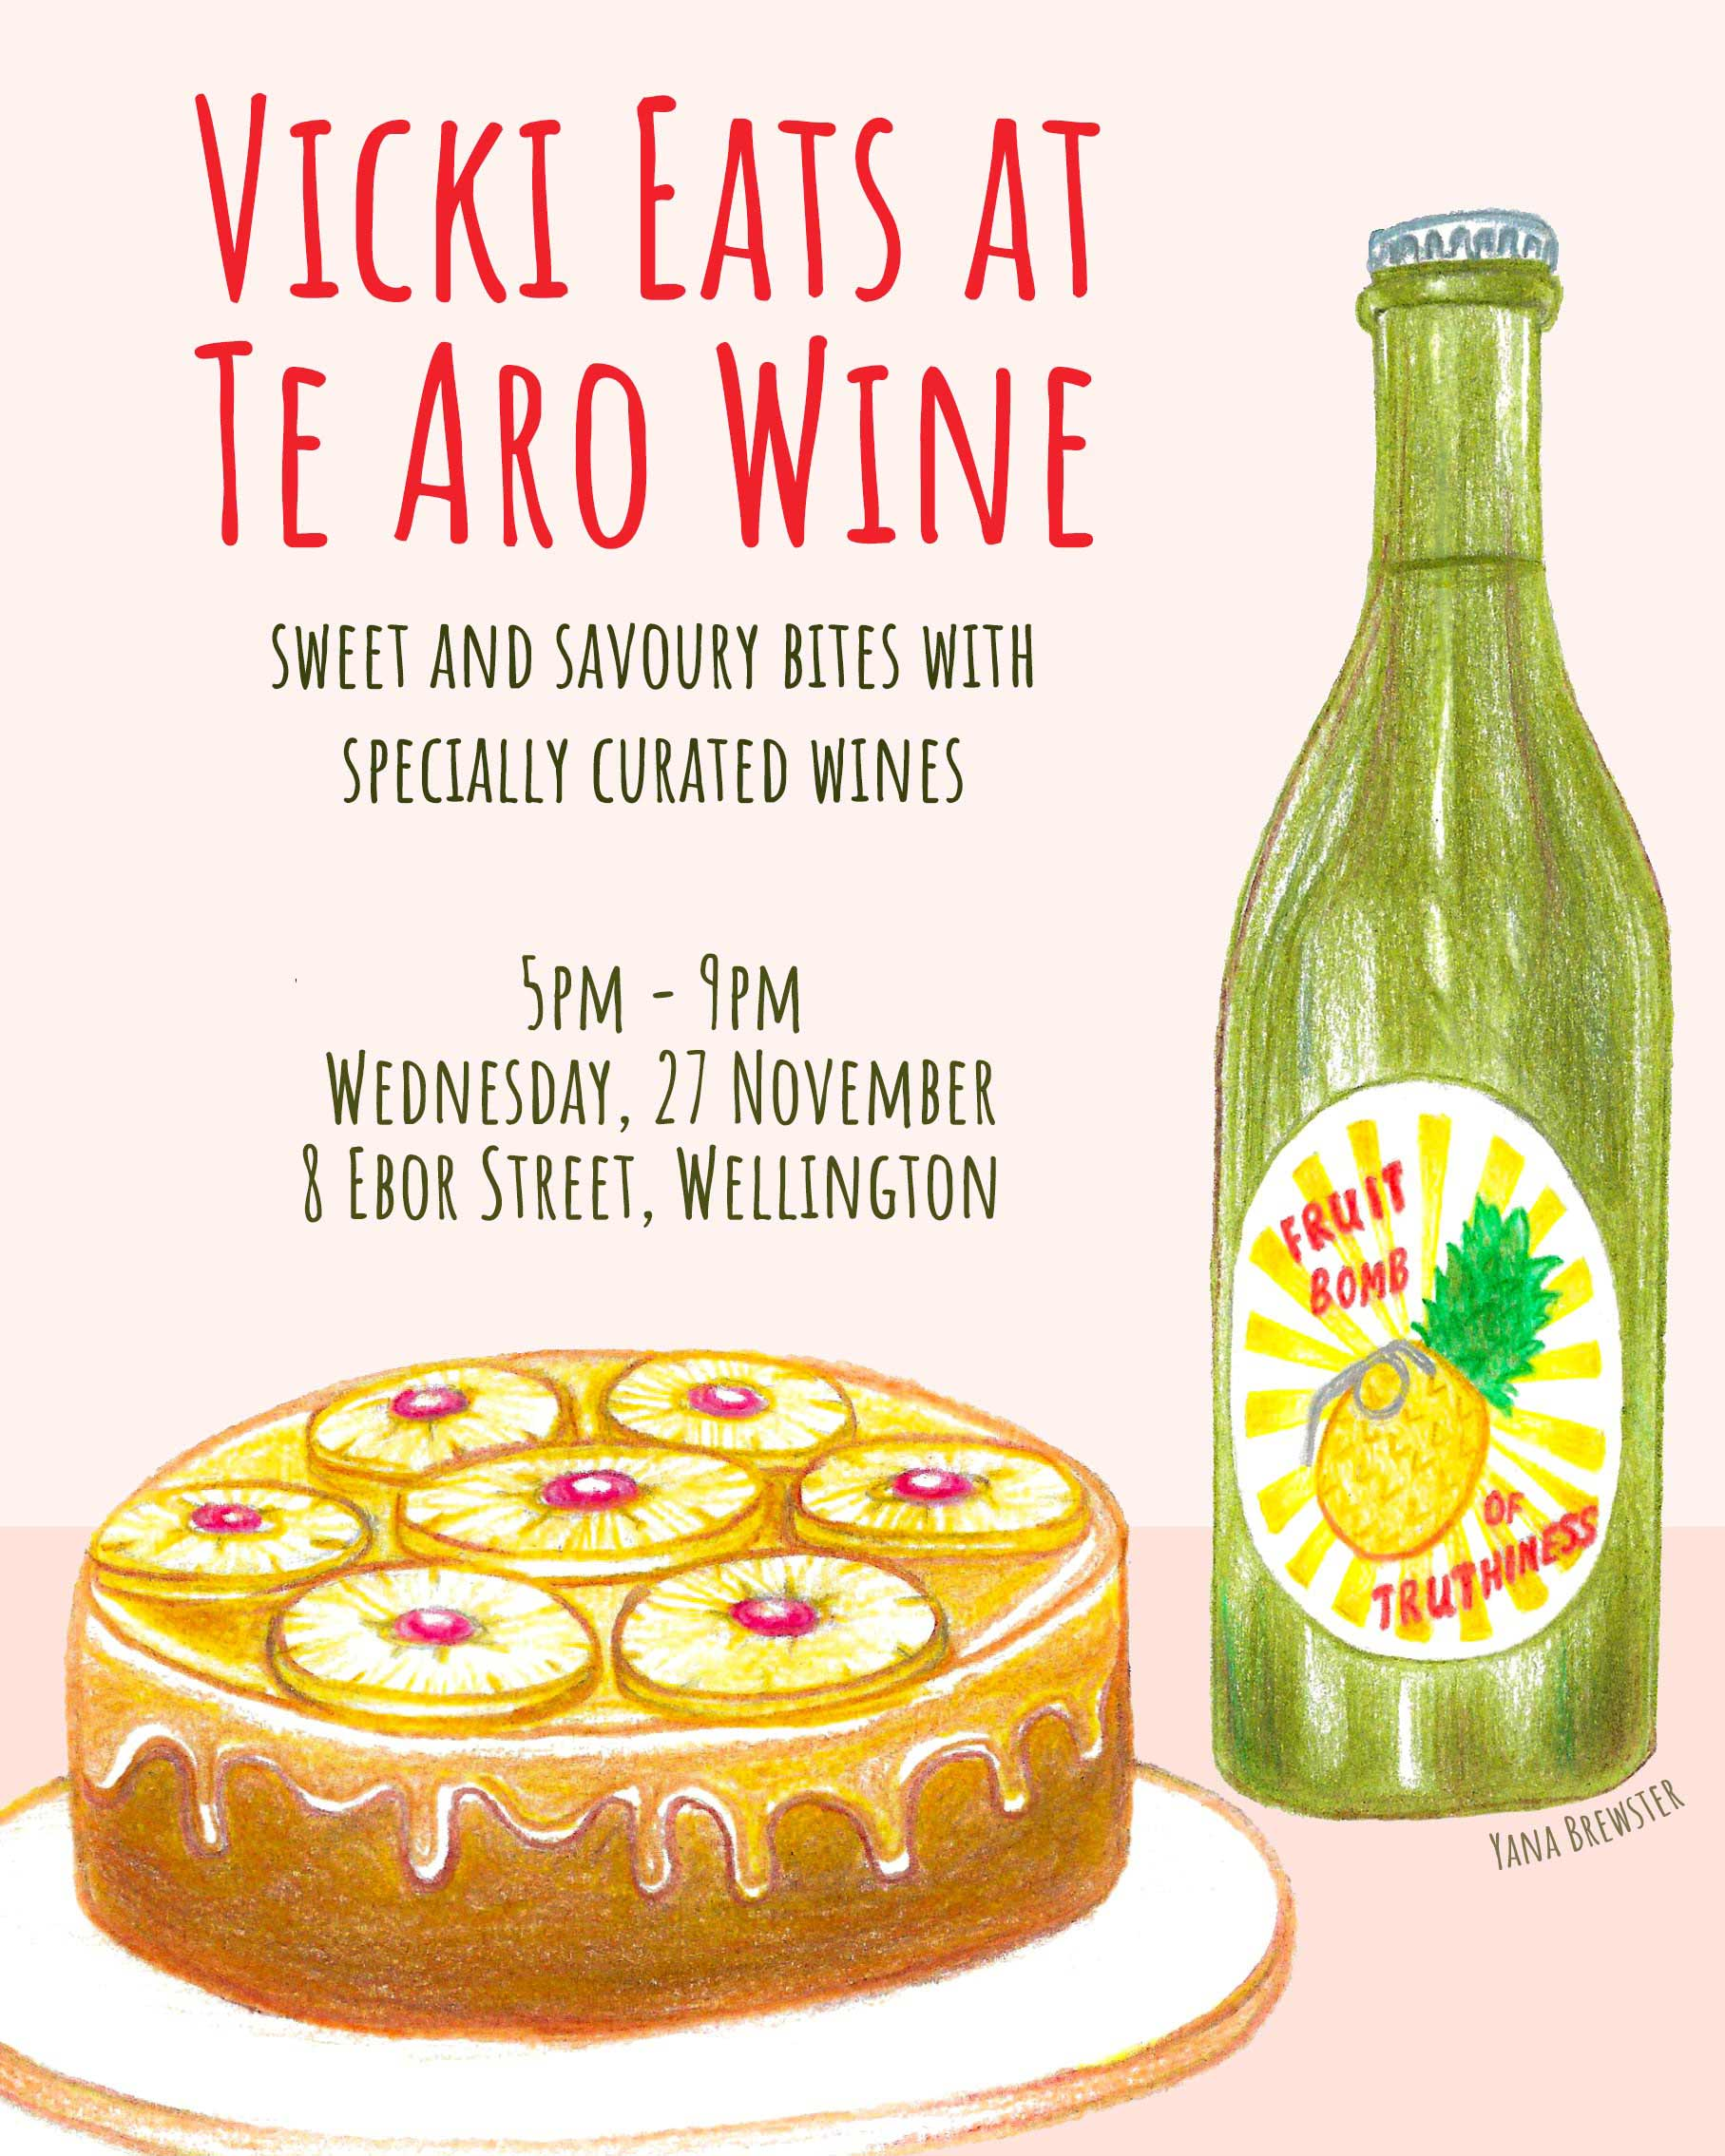 Vicki Eats and Te Aro Wine Poster by Yana Brewster